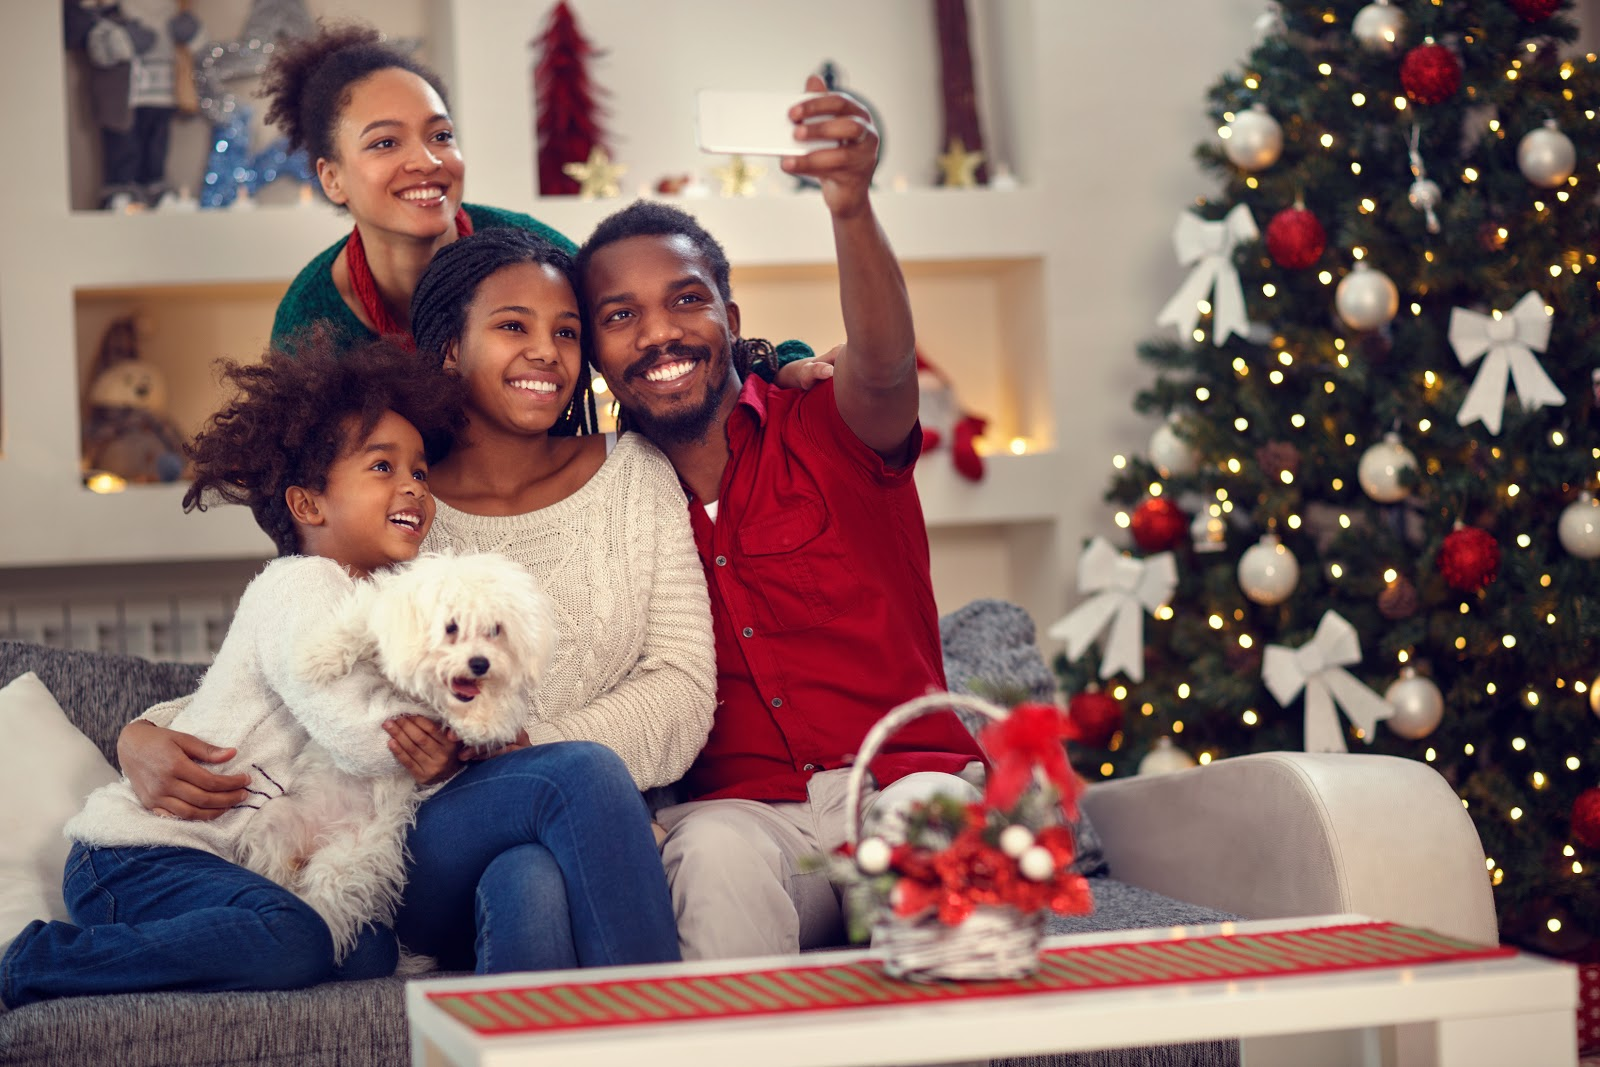 Online Christmas Cards: Family taking a group photo